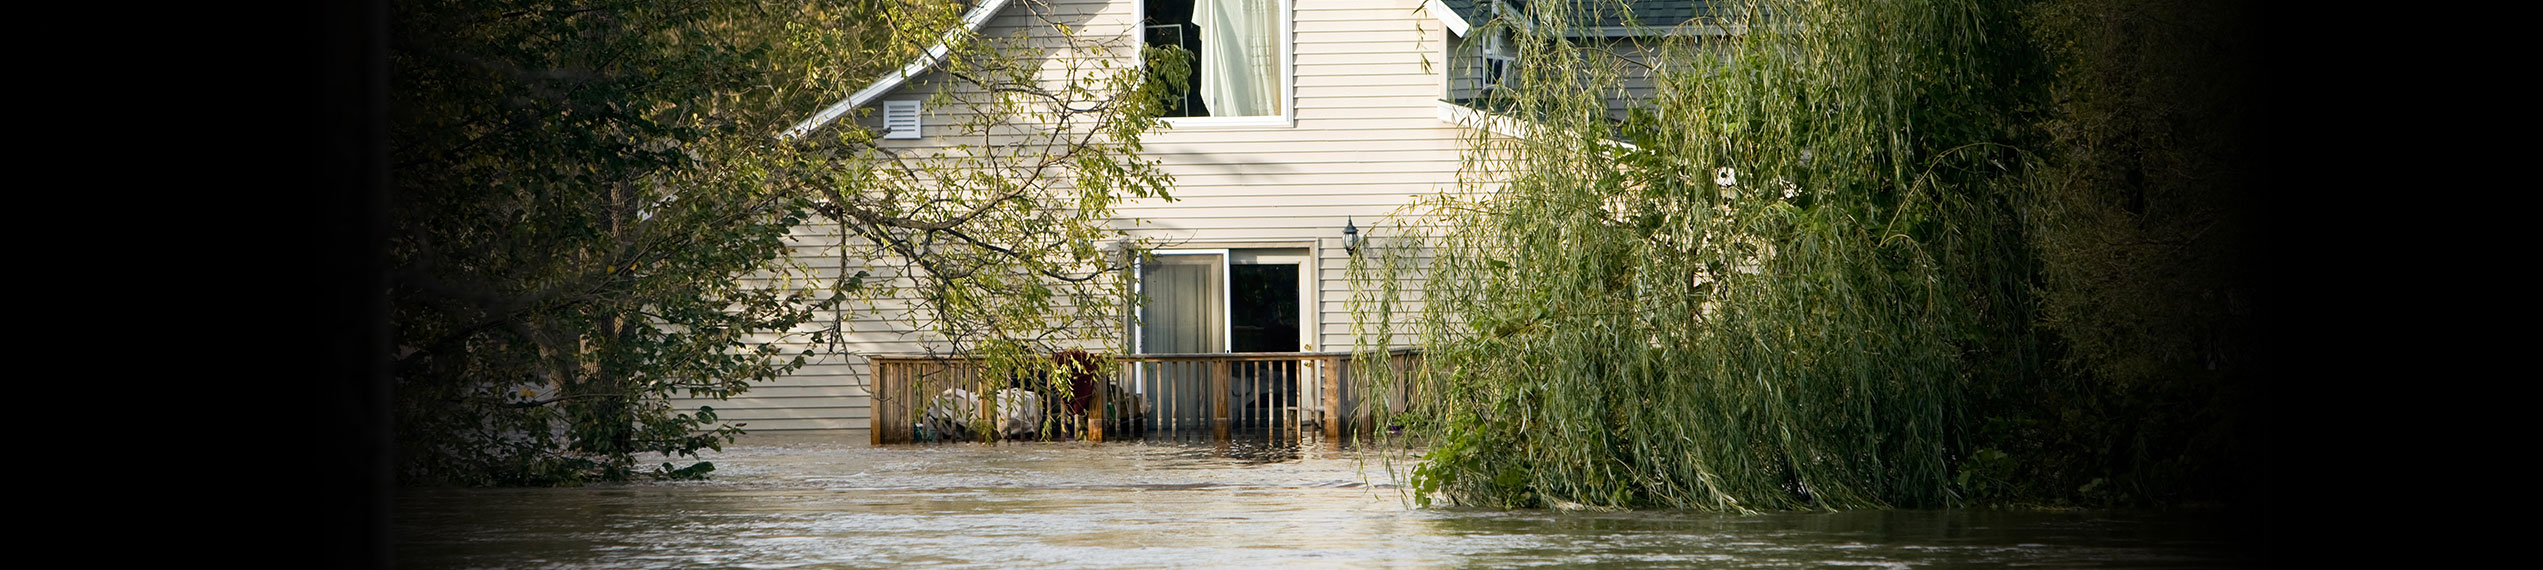 Water & Flood Damage Removal Services in Paul Davis Emergency Services of West Houston